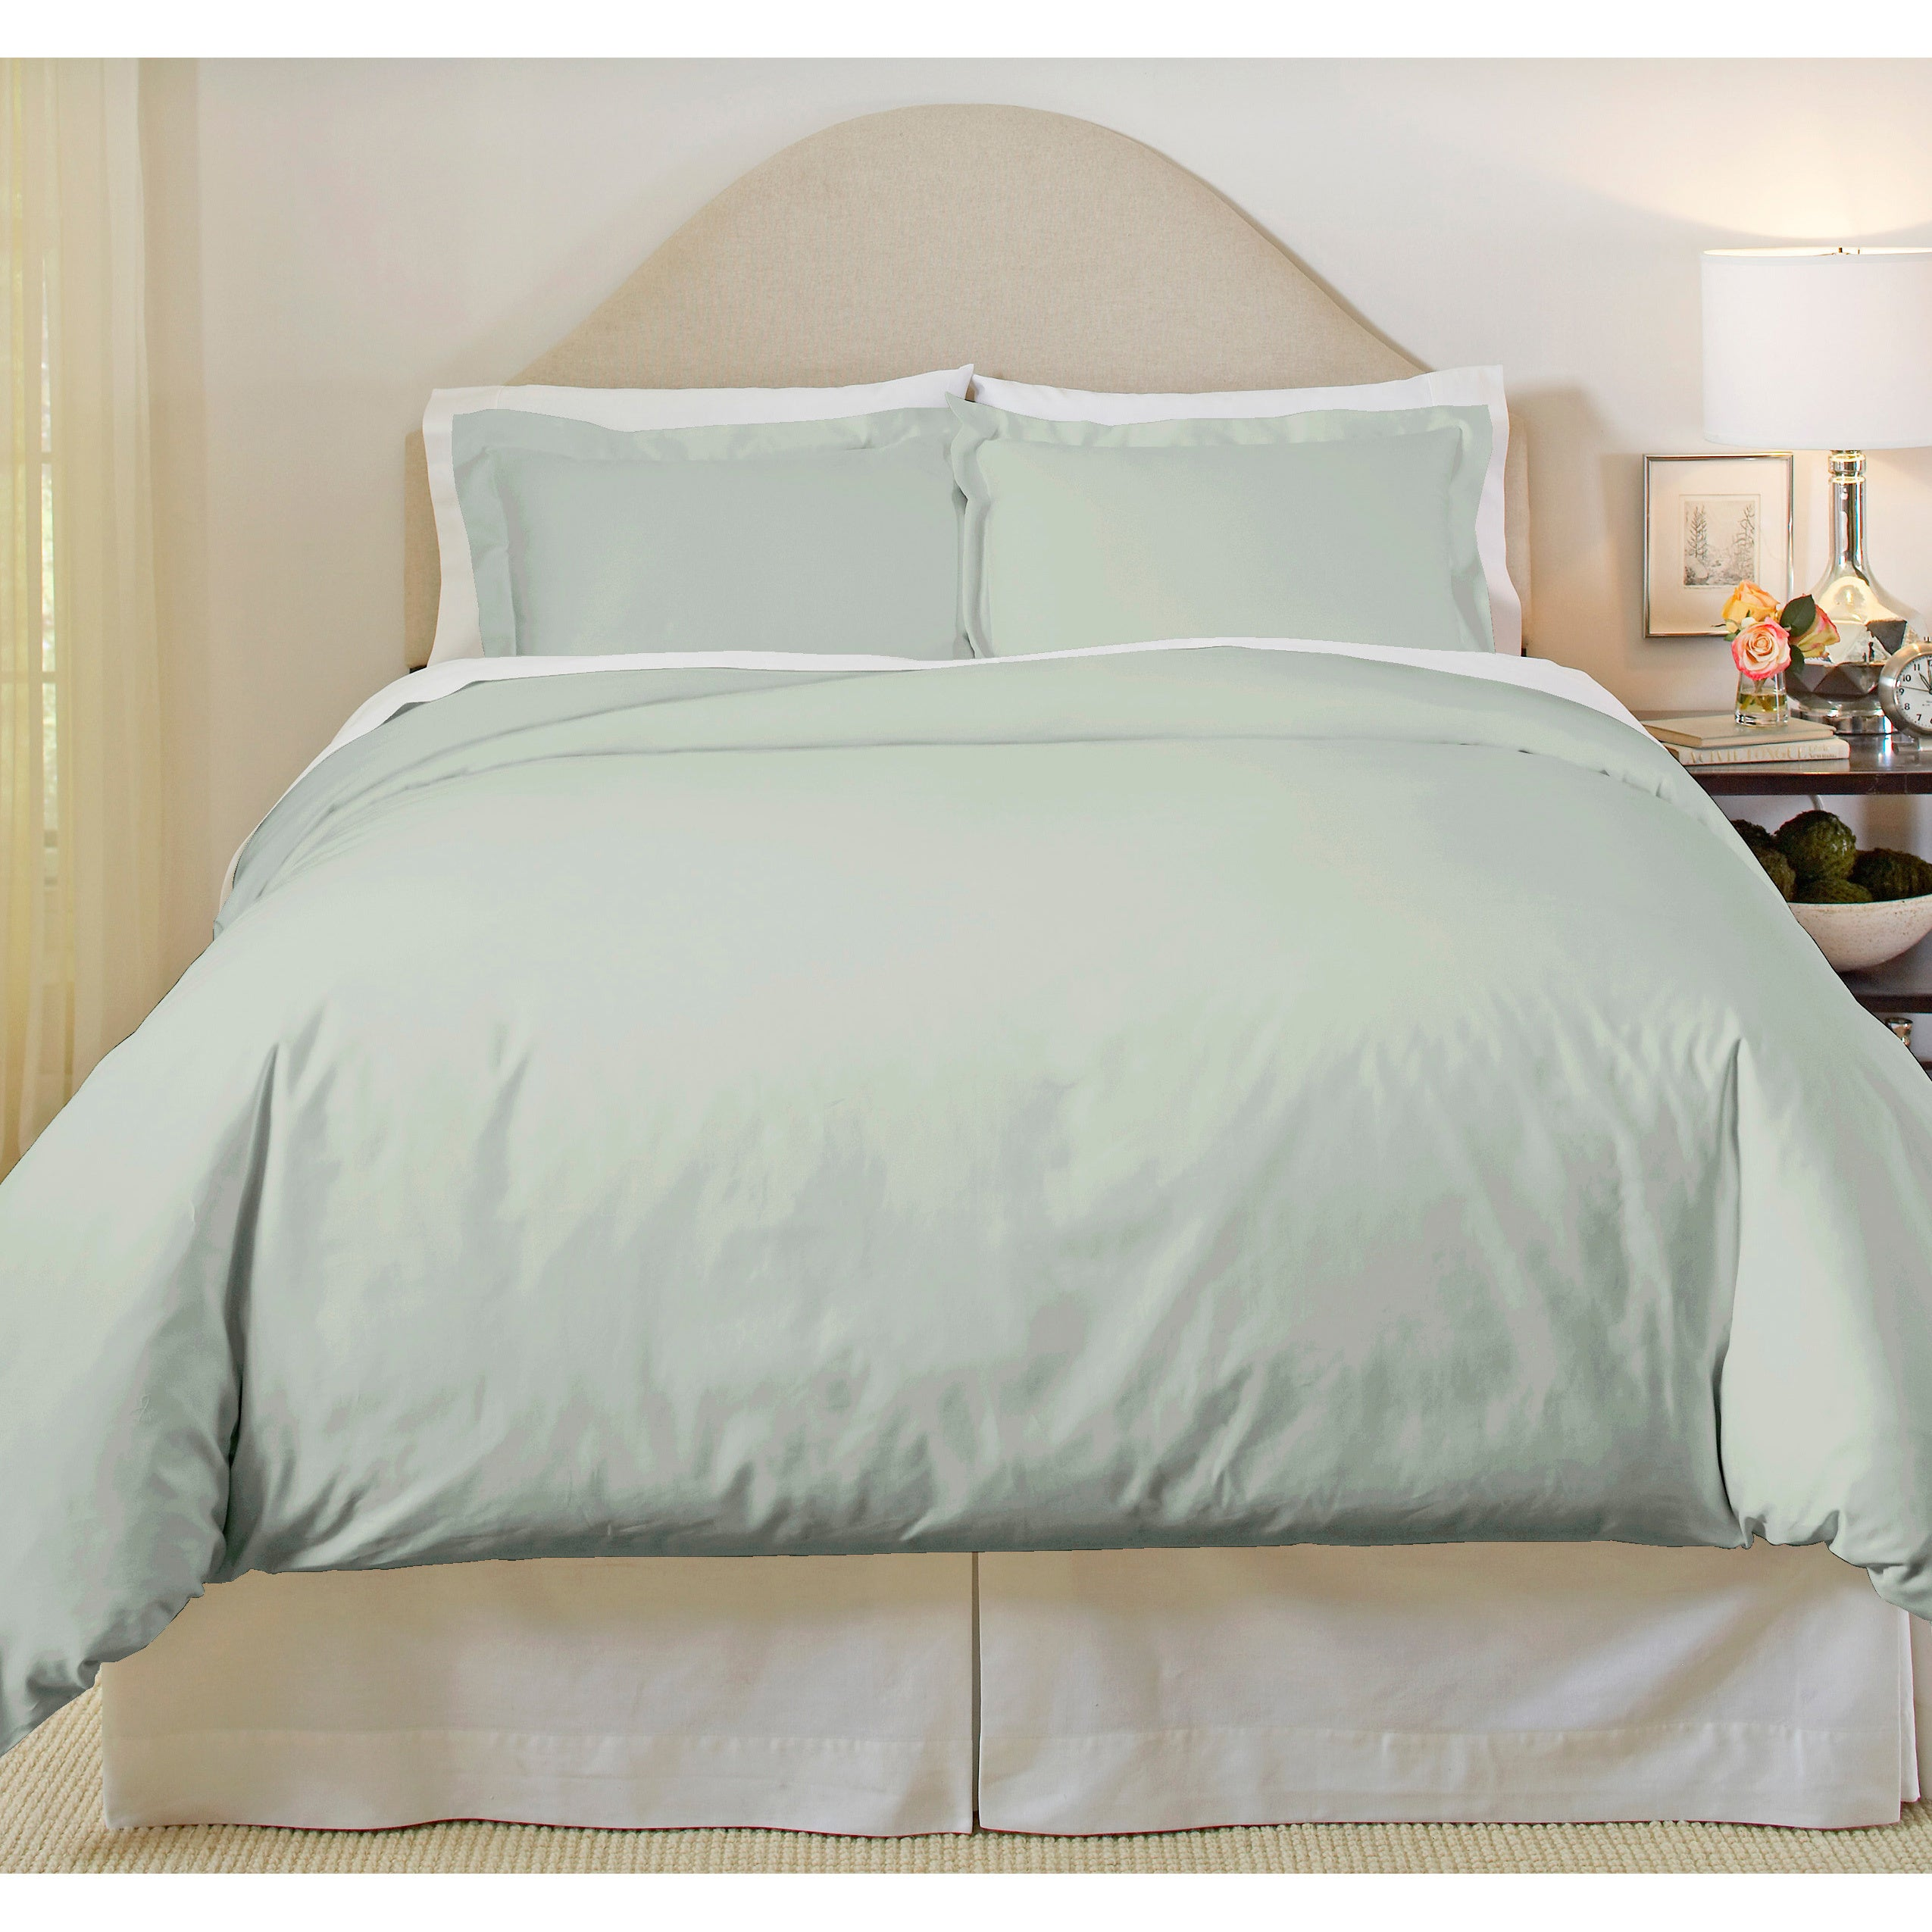 set j cuddle action product duvet fleece supersoft show d williams shop details